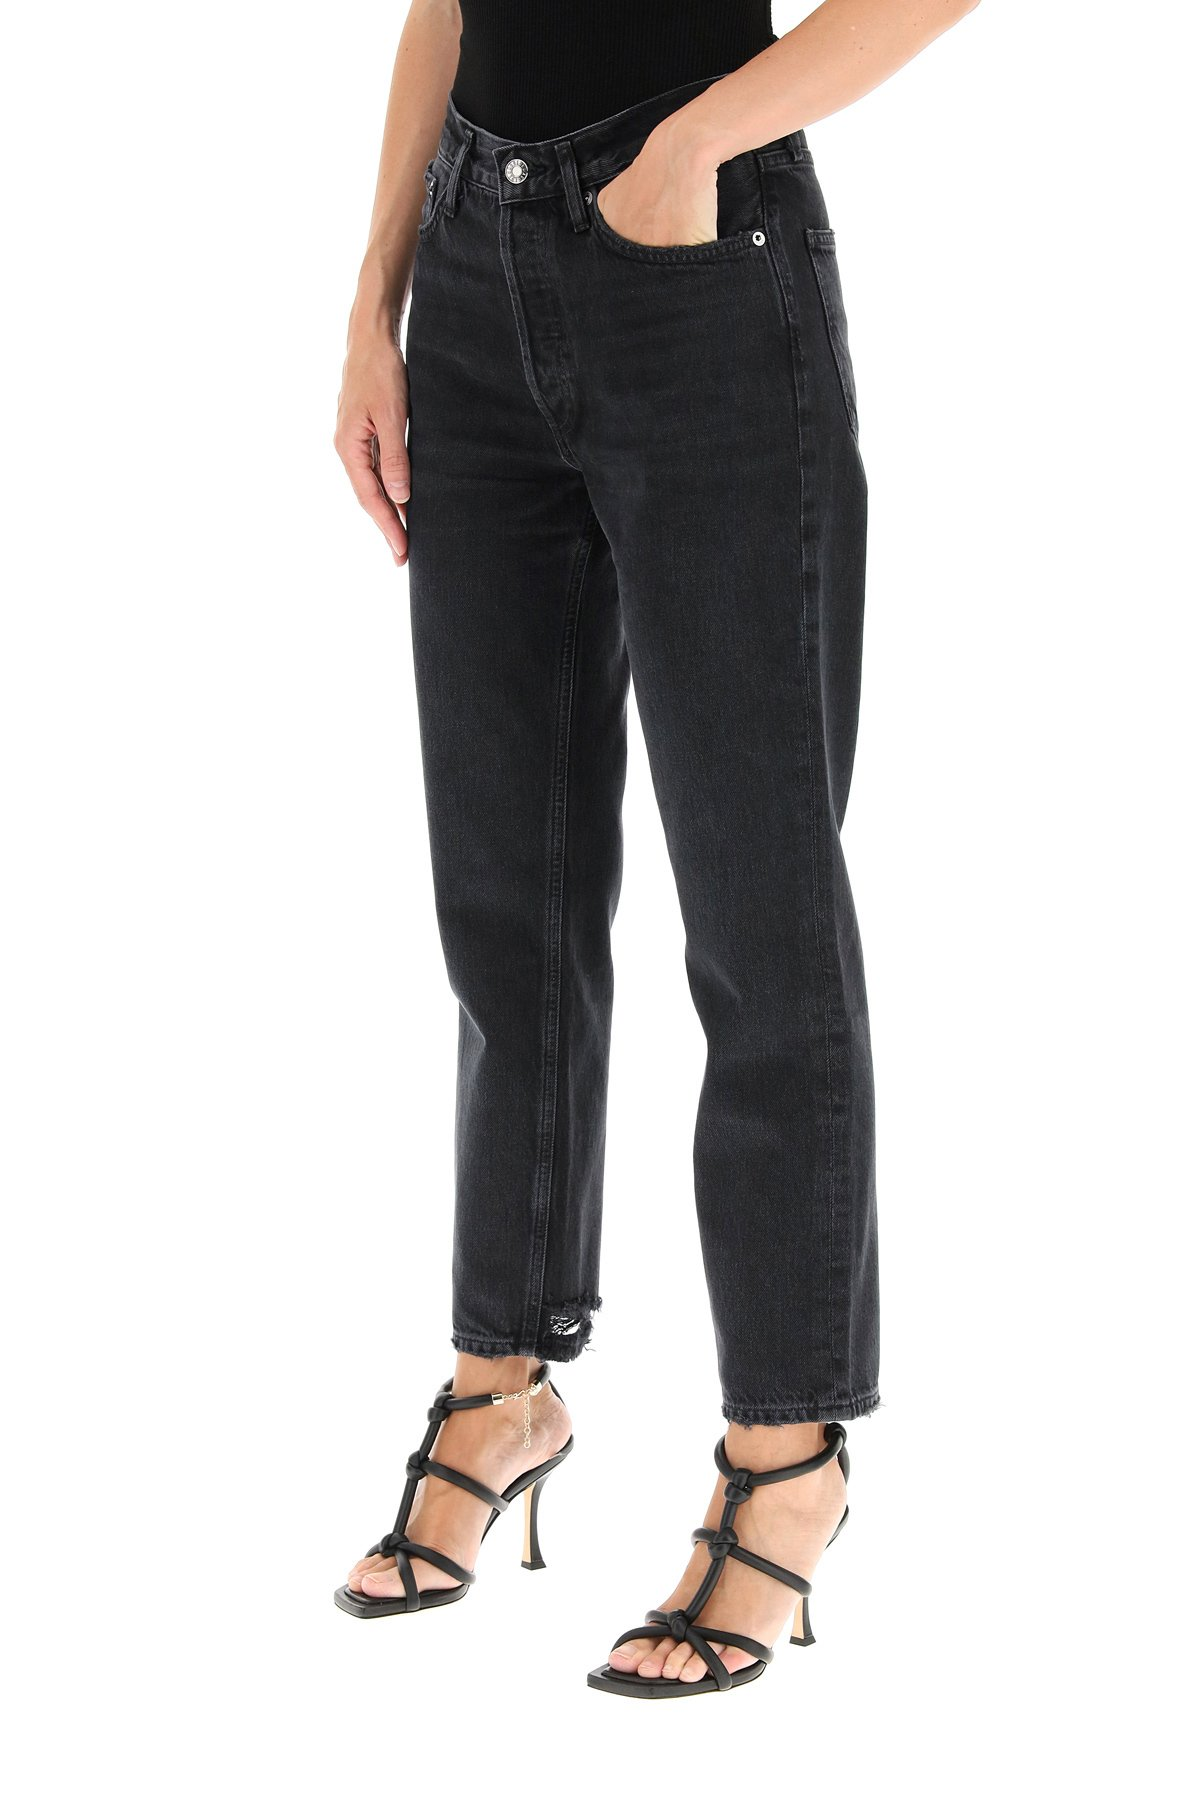 Agolde lana cropped jeans